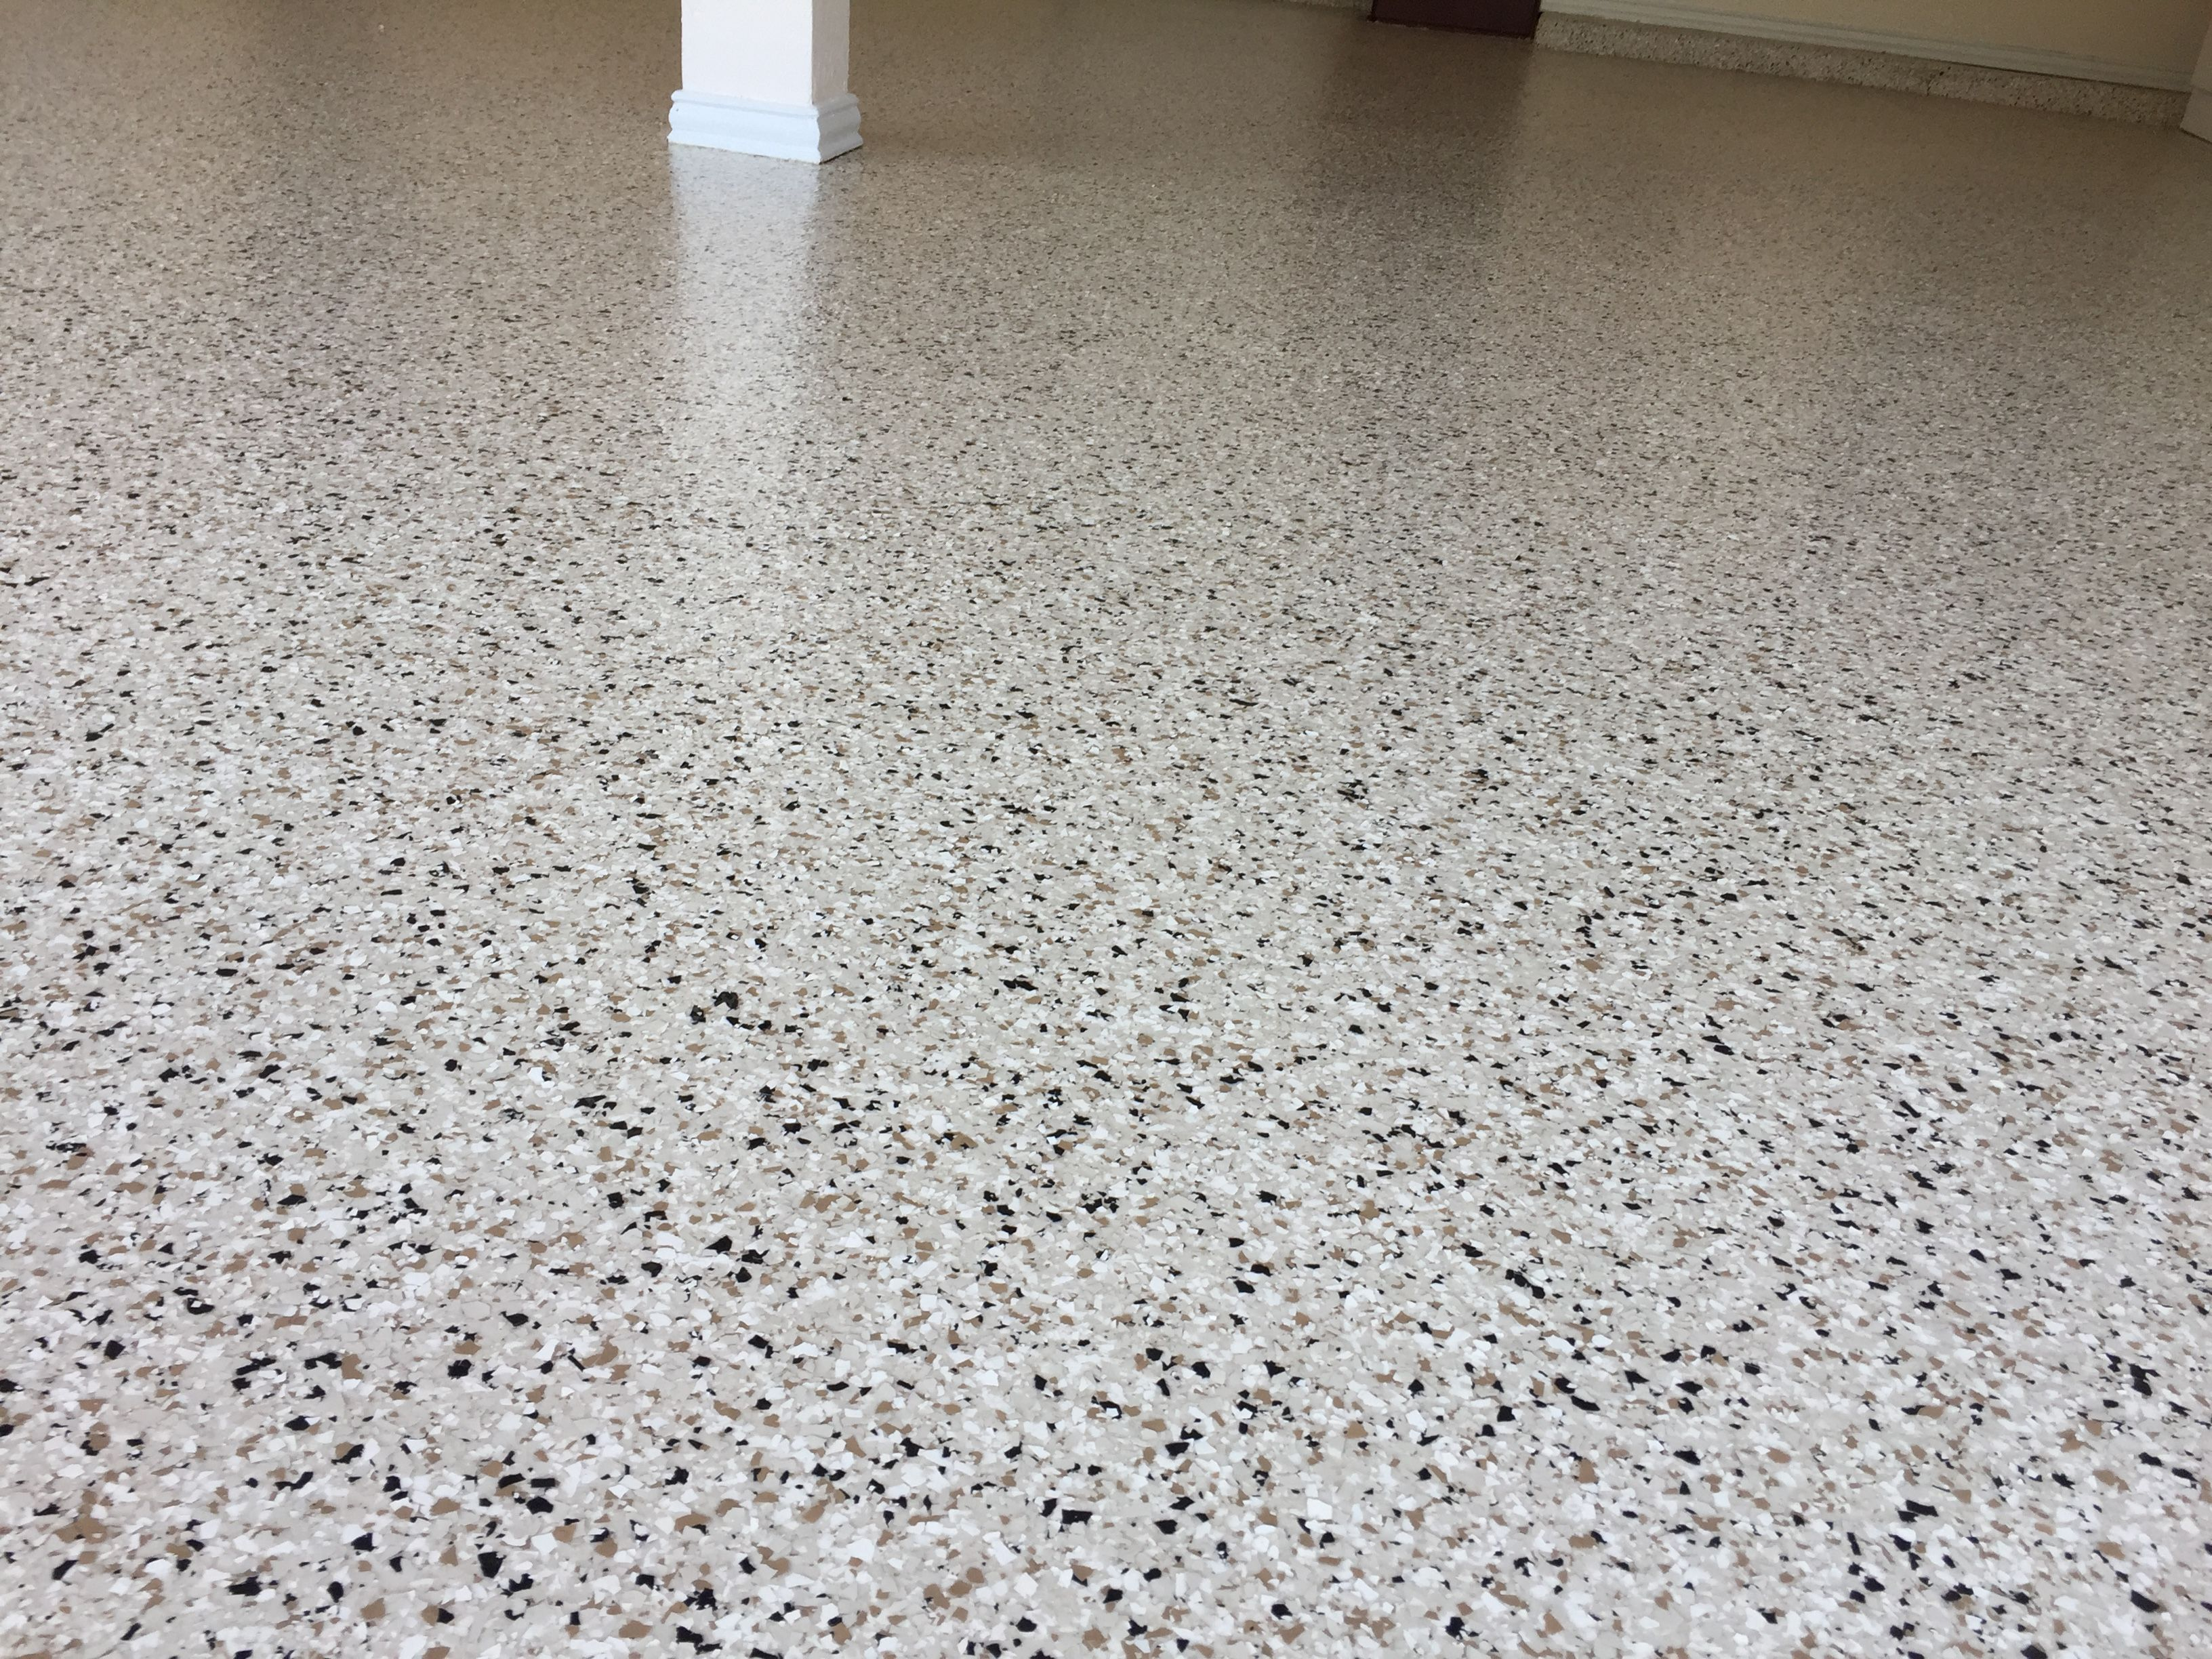 Epoxy Garage Floor Covering In 2019 Epoxy Garage Floor